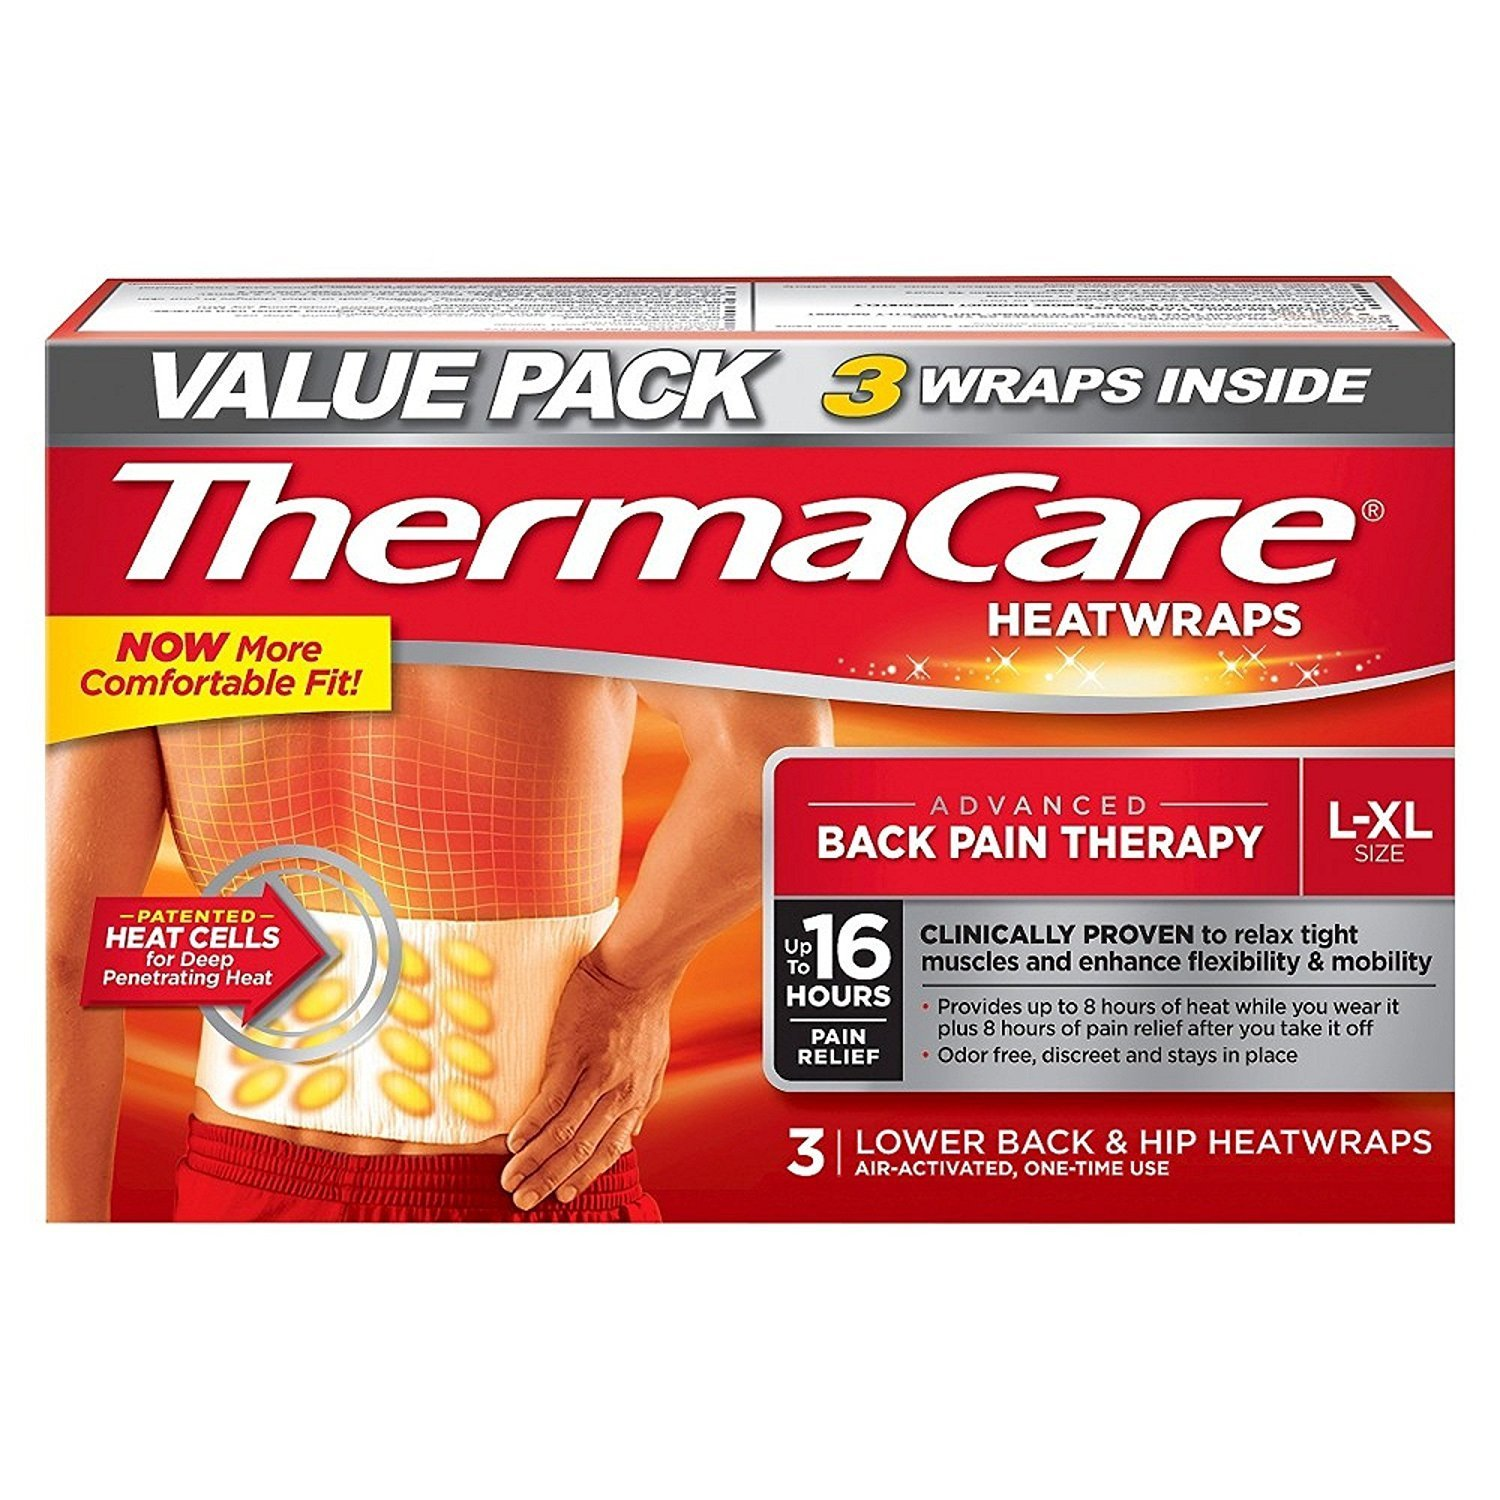 Lower Back & Hip Heat Wraps, Large-XL, 9 HeatWraps3 Pack ,each pack contains 3 wraps inside By ThermaCare